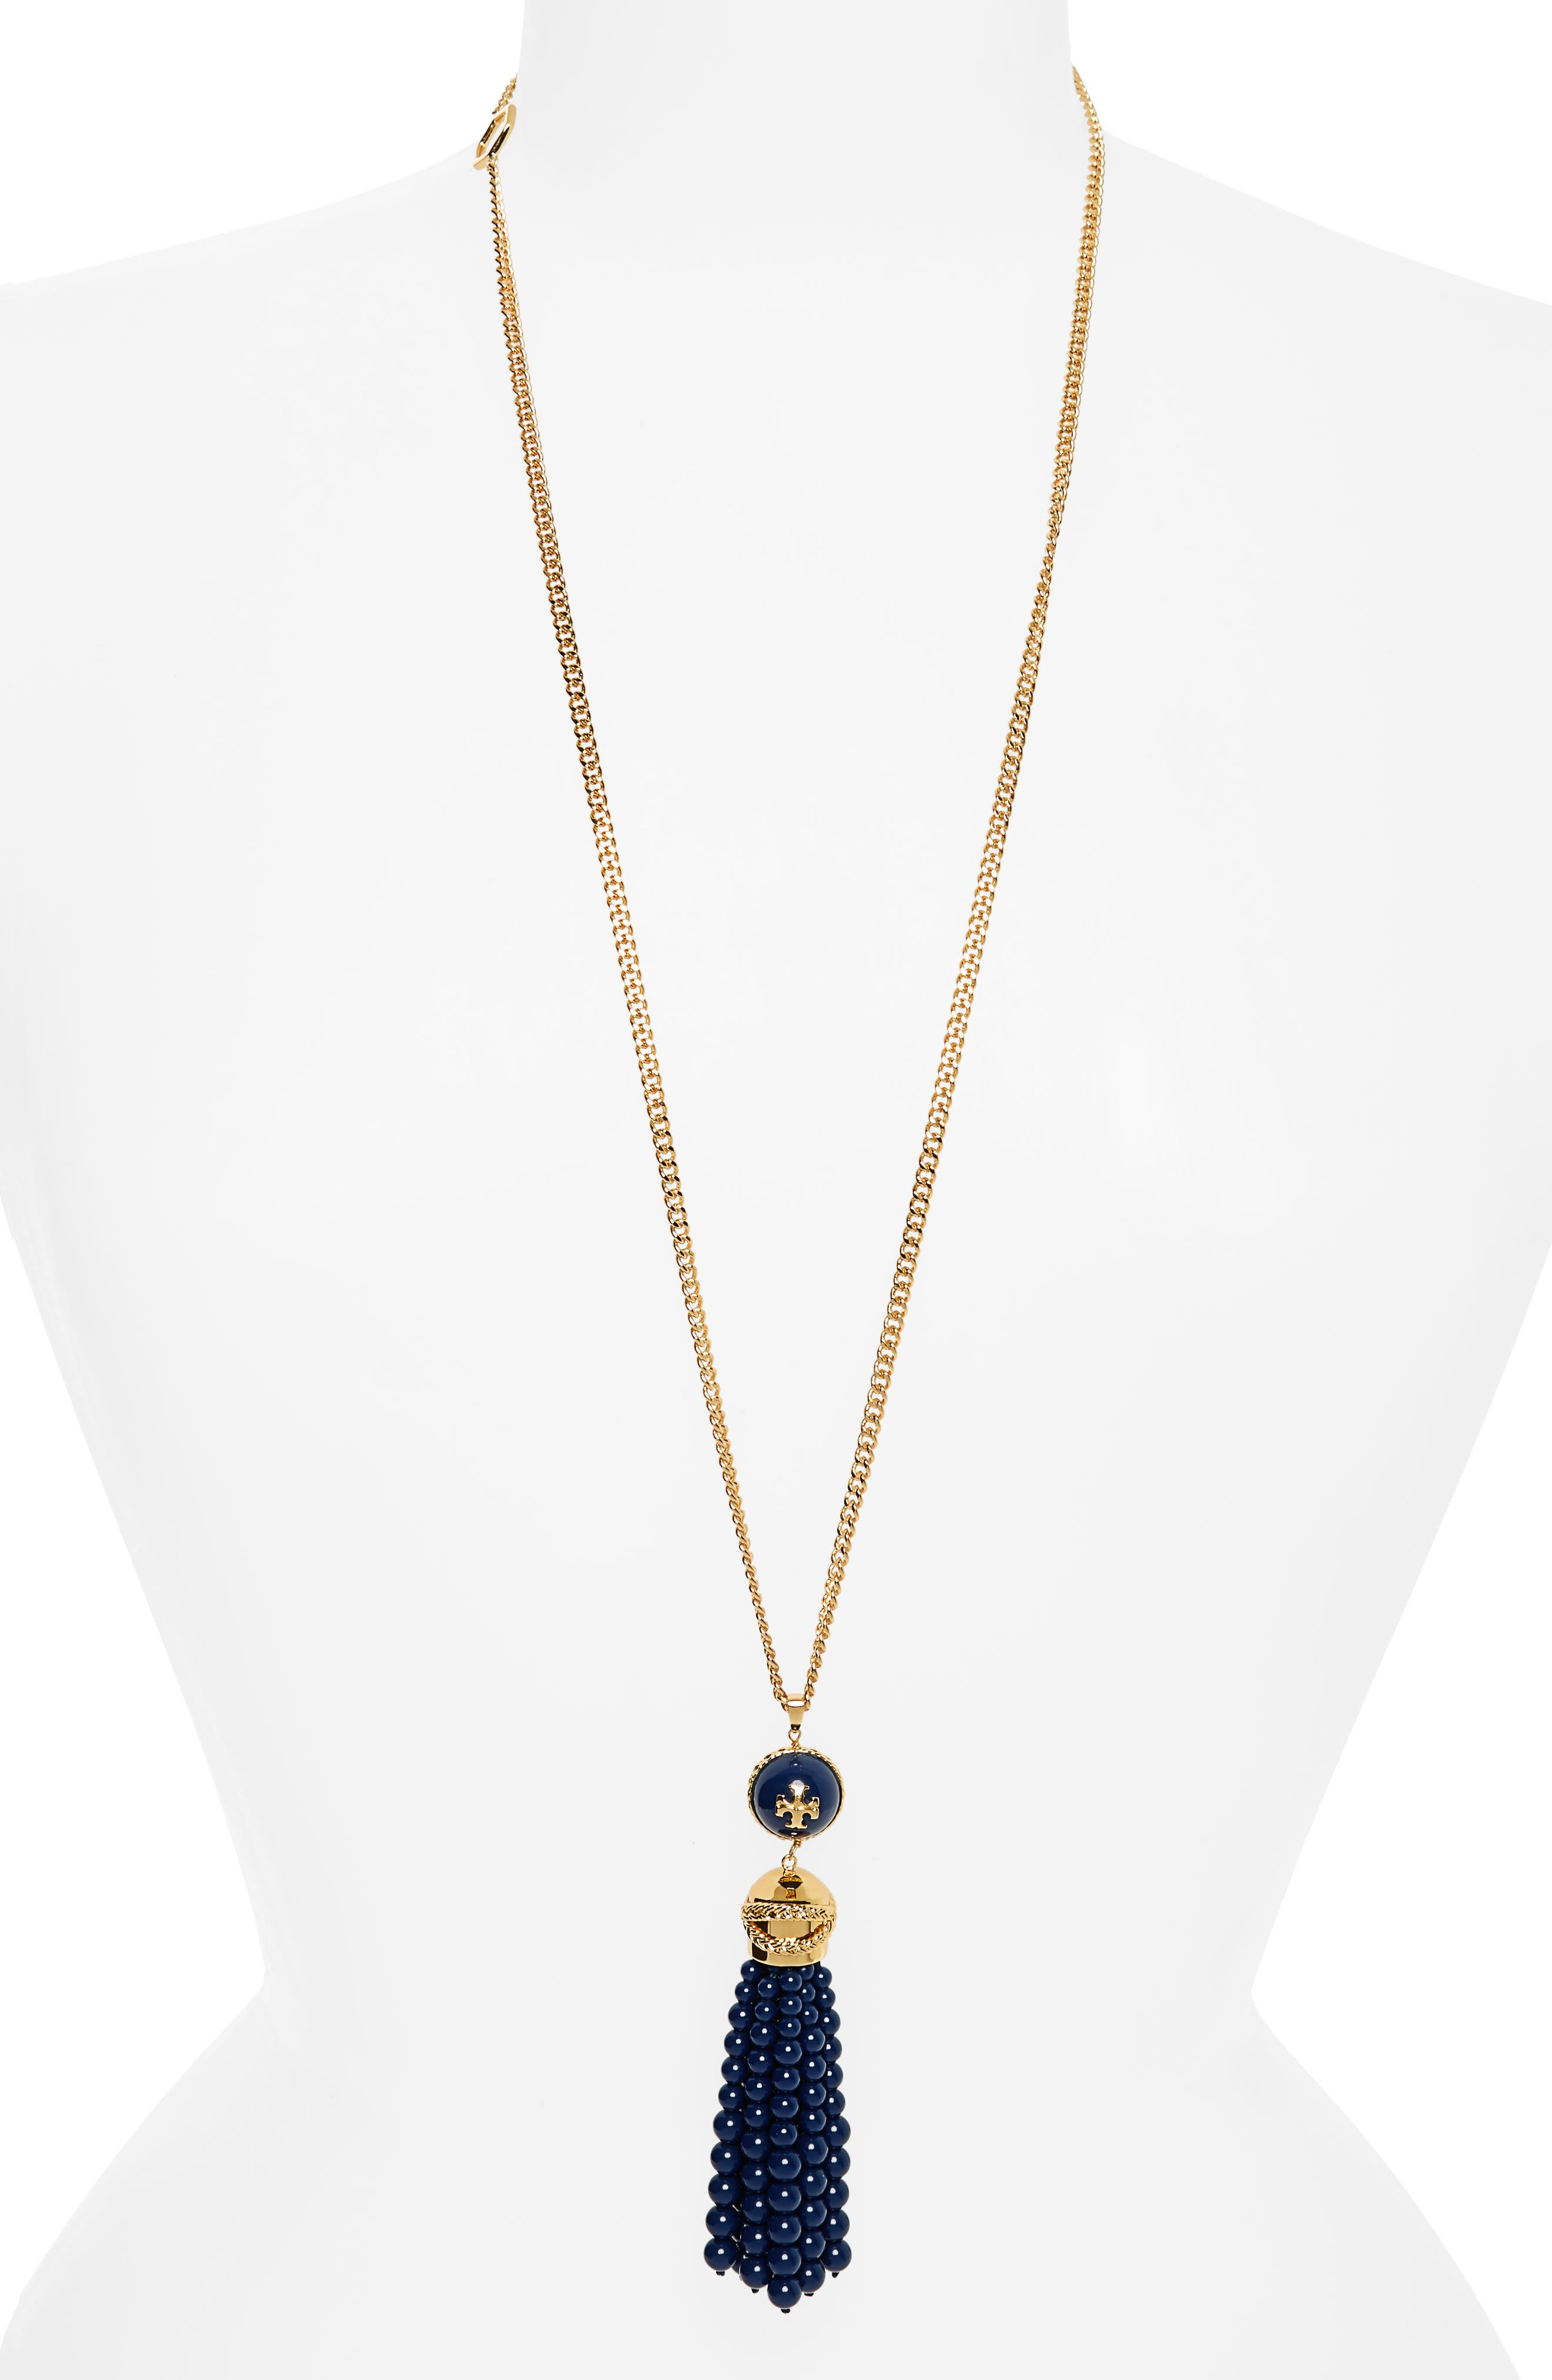 Tory Burch Beaded Tassel Necklace